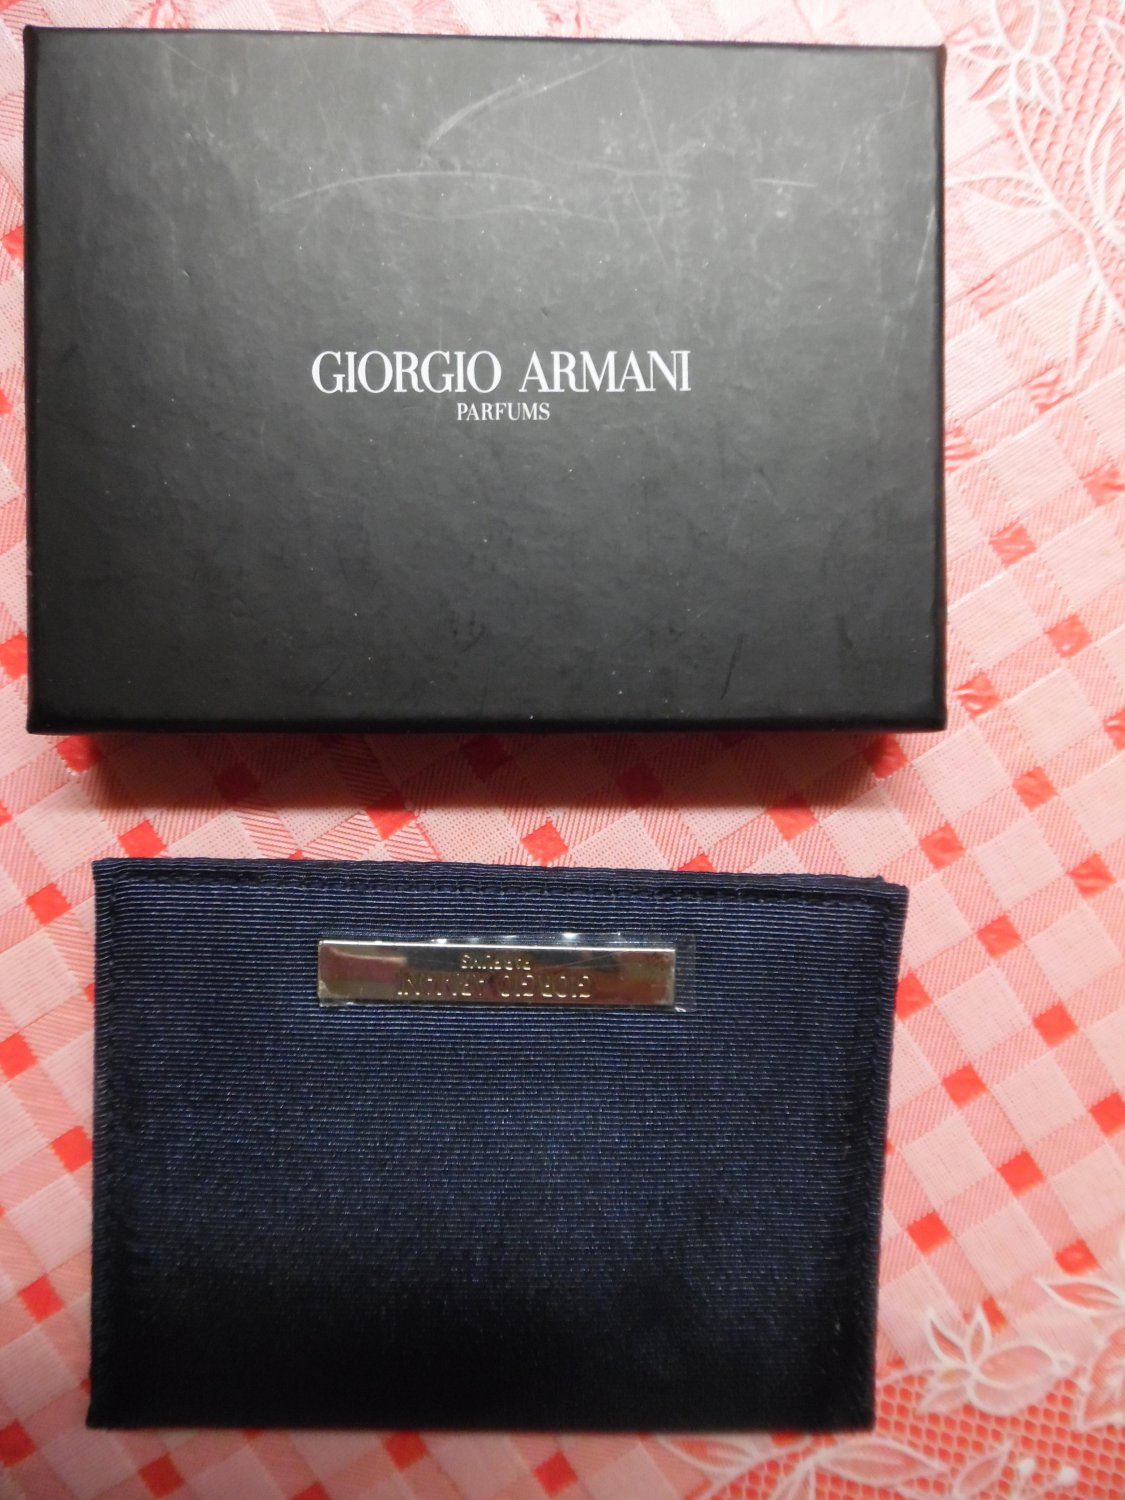 GIORGIO ARMANI Parfums Navy Blue Wallet With Mirror